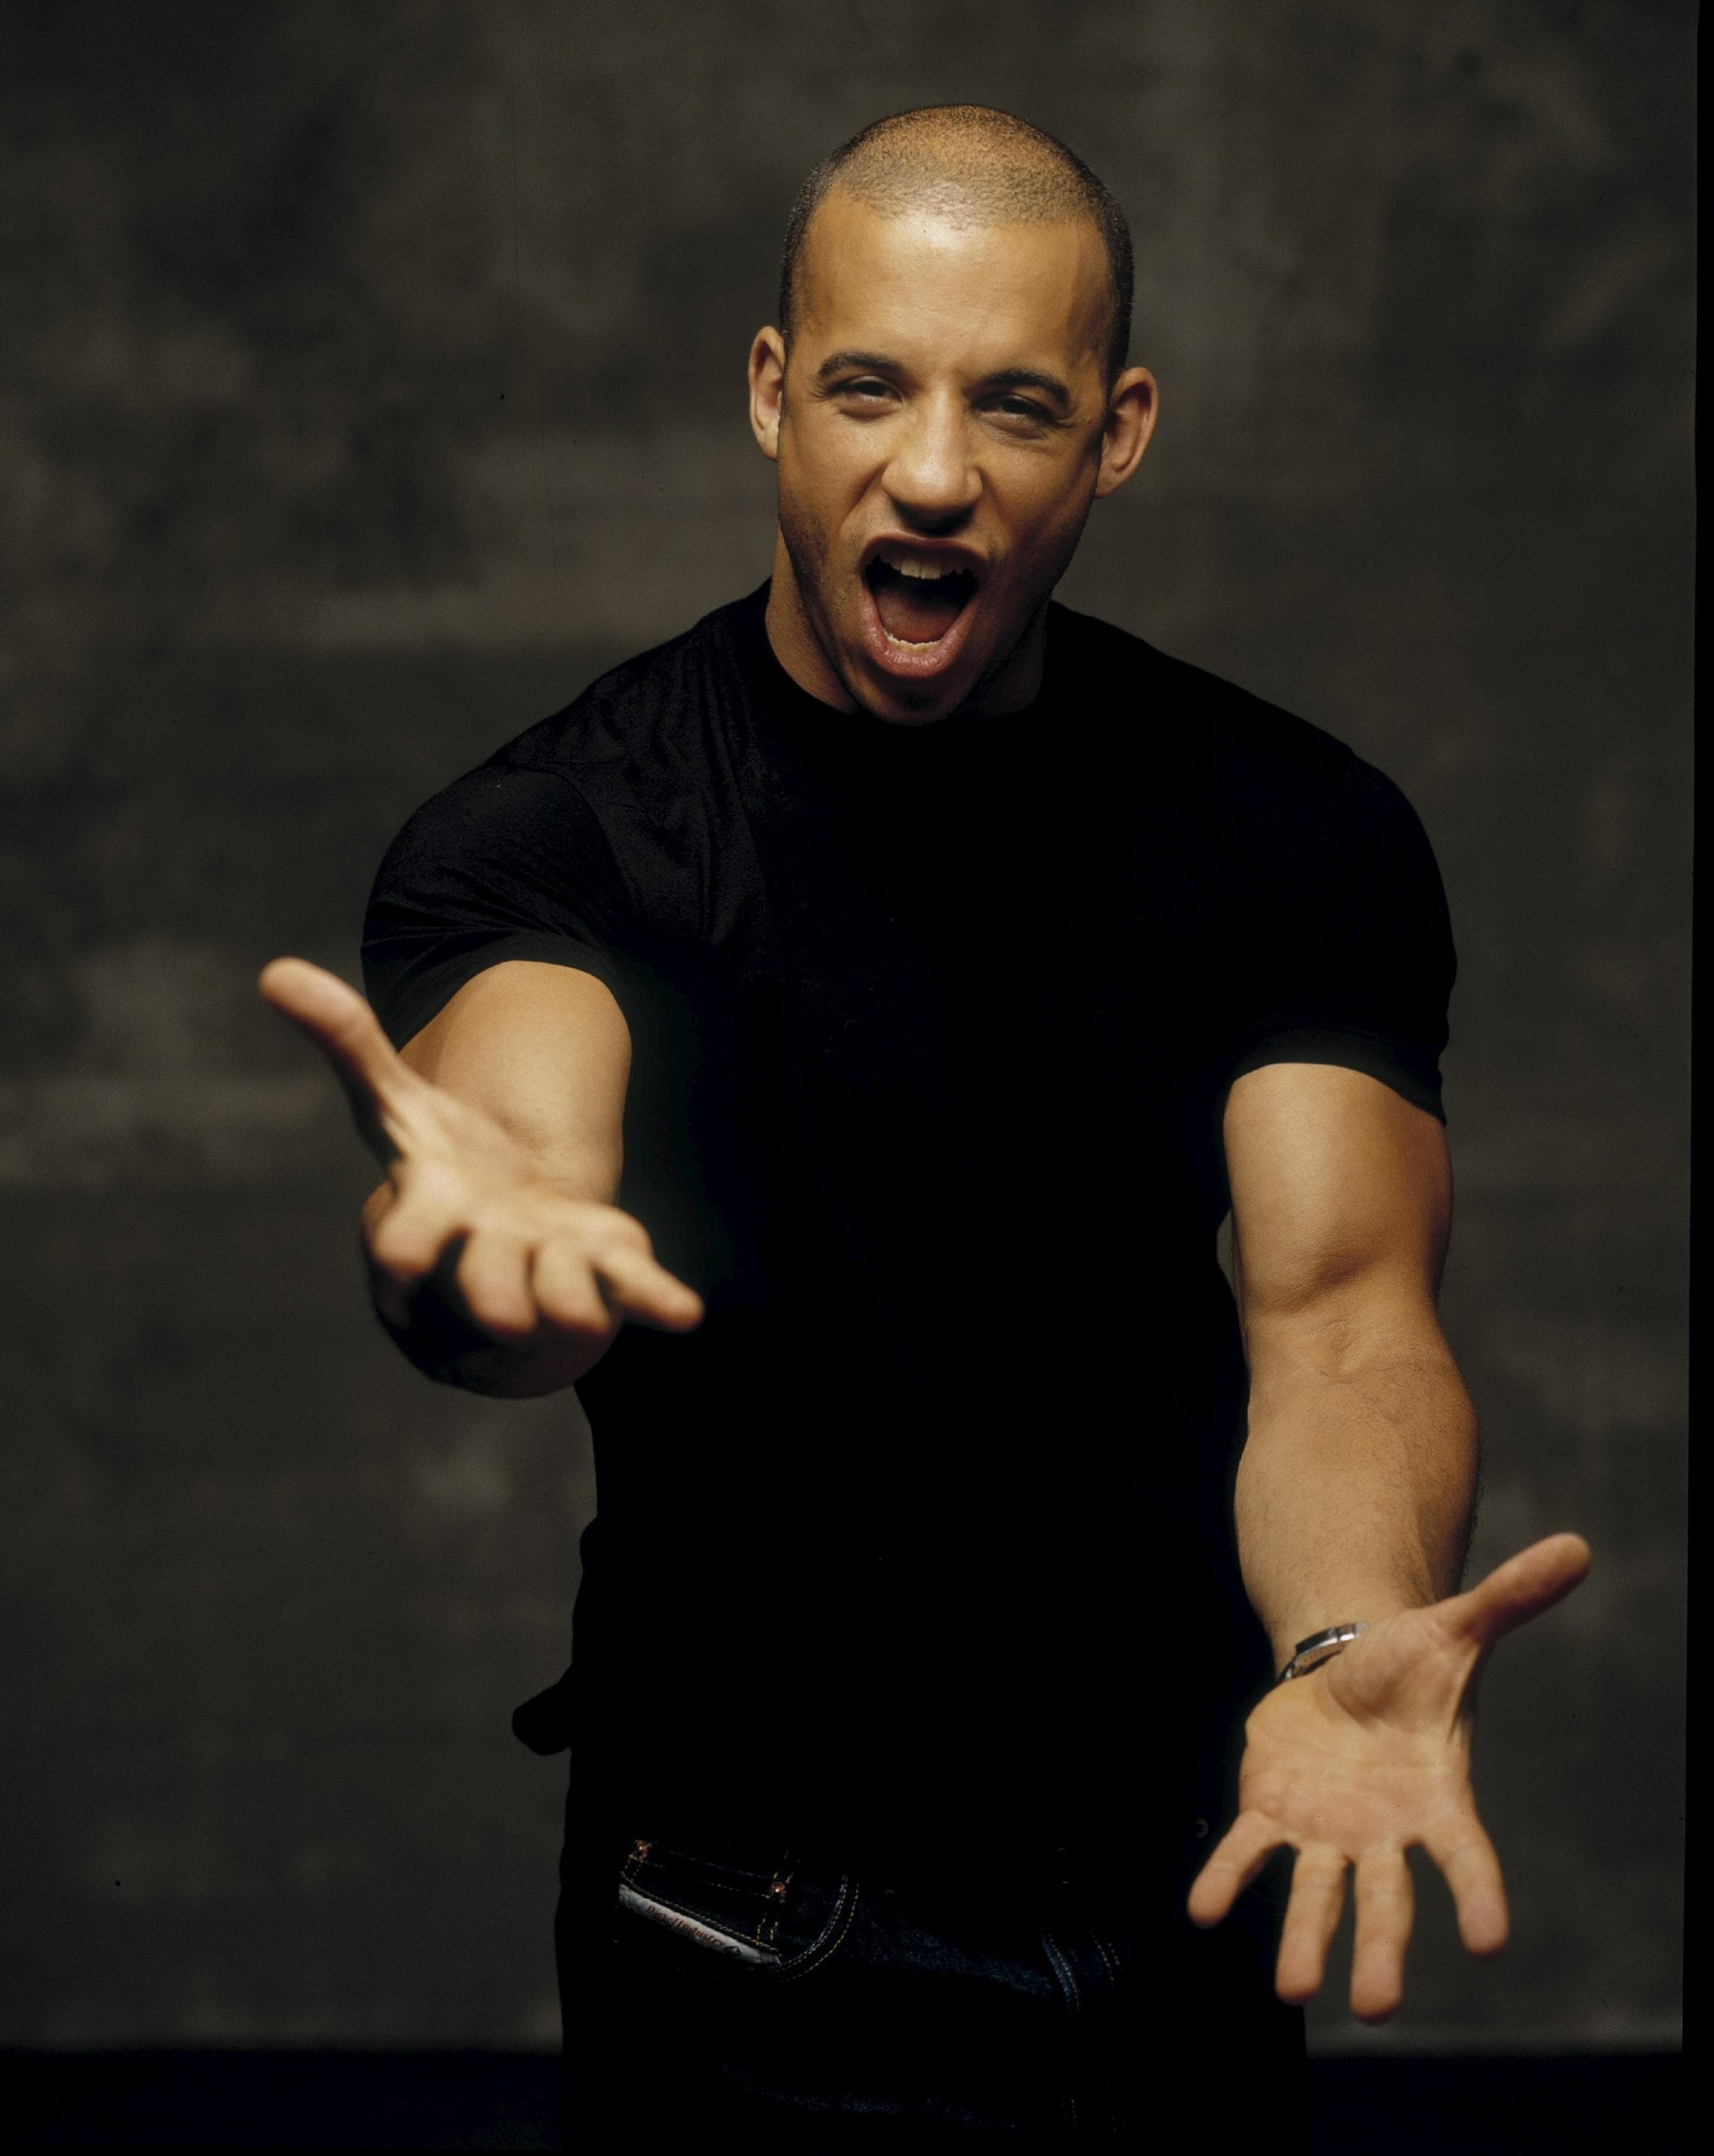 Vin Diesel Backgrounds